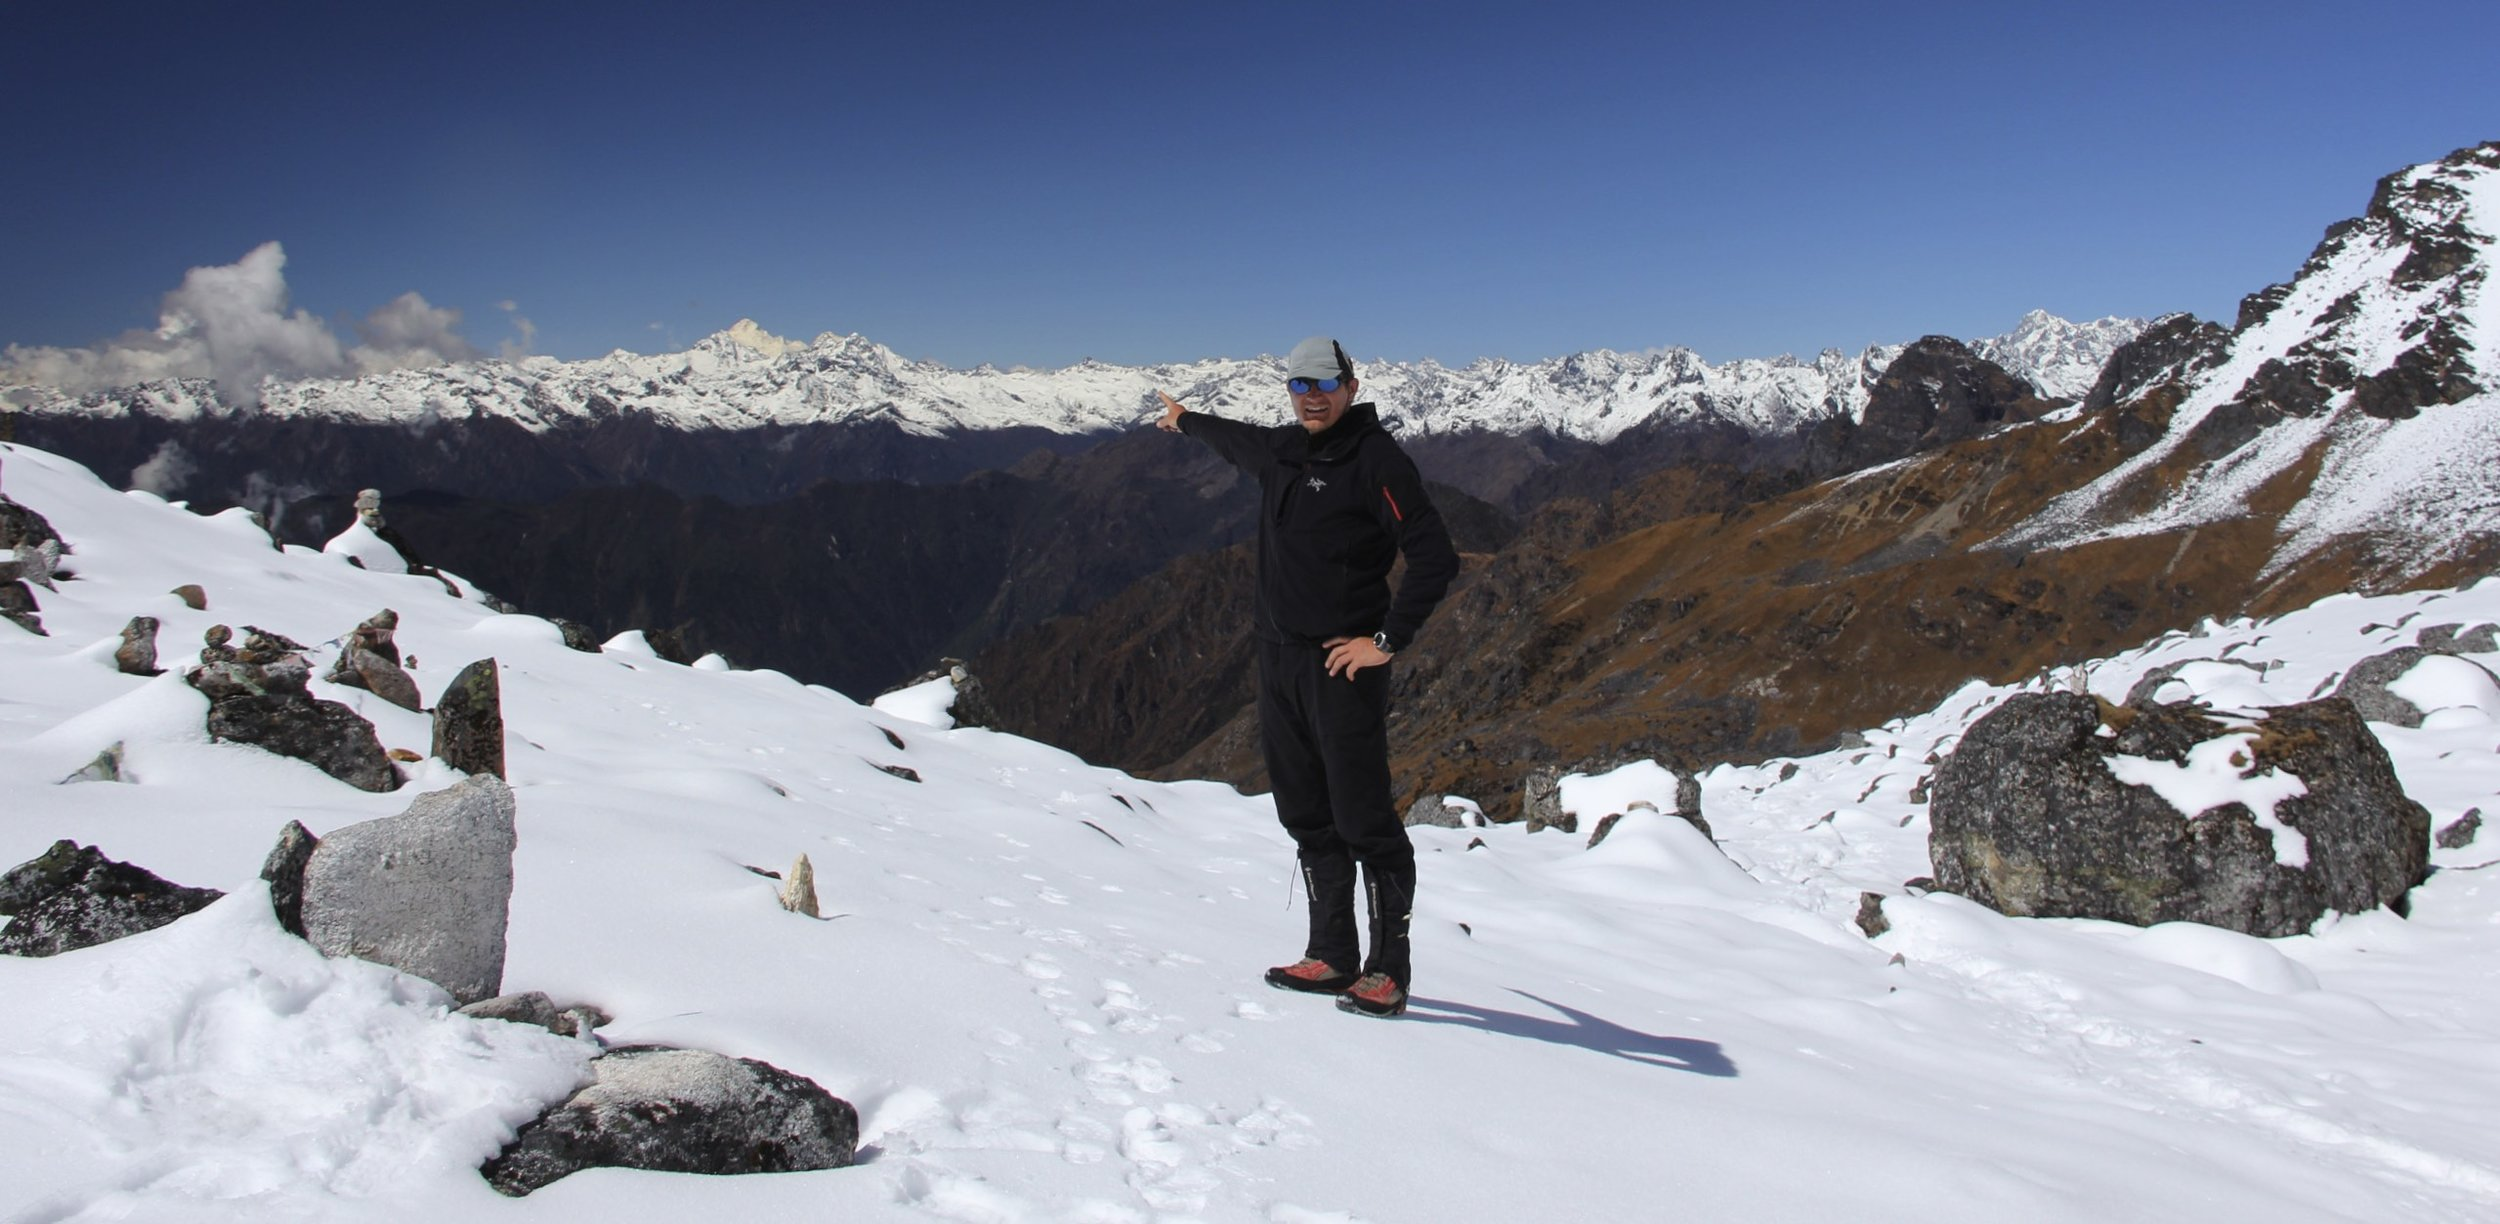 Selele La Pass 4,480m. I am pointing at Mt. Makalu where I was the year before.